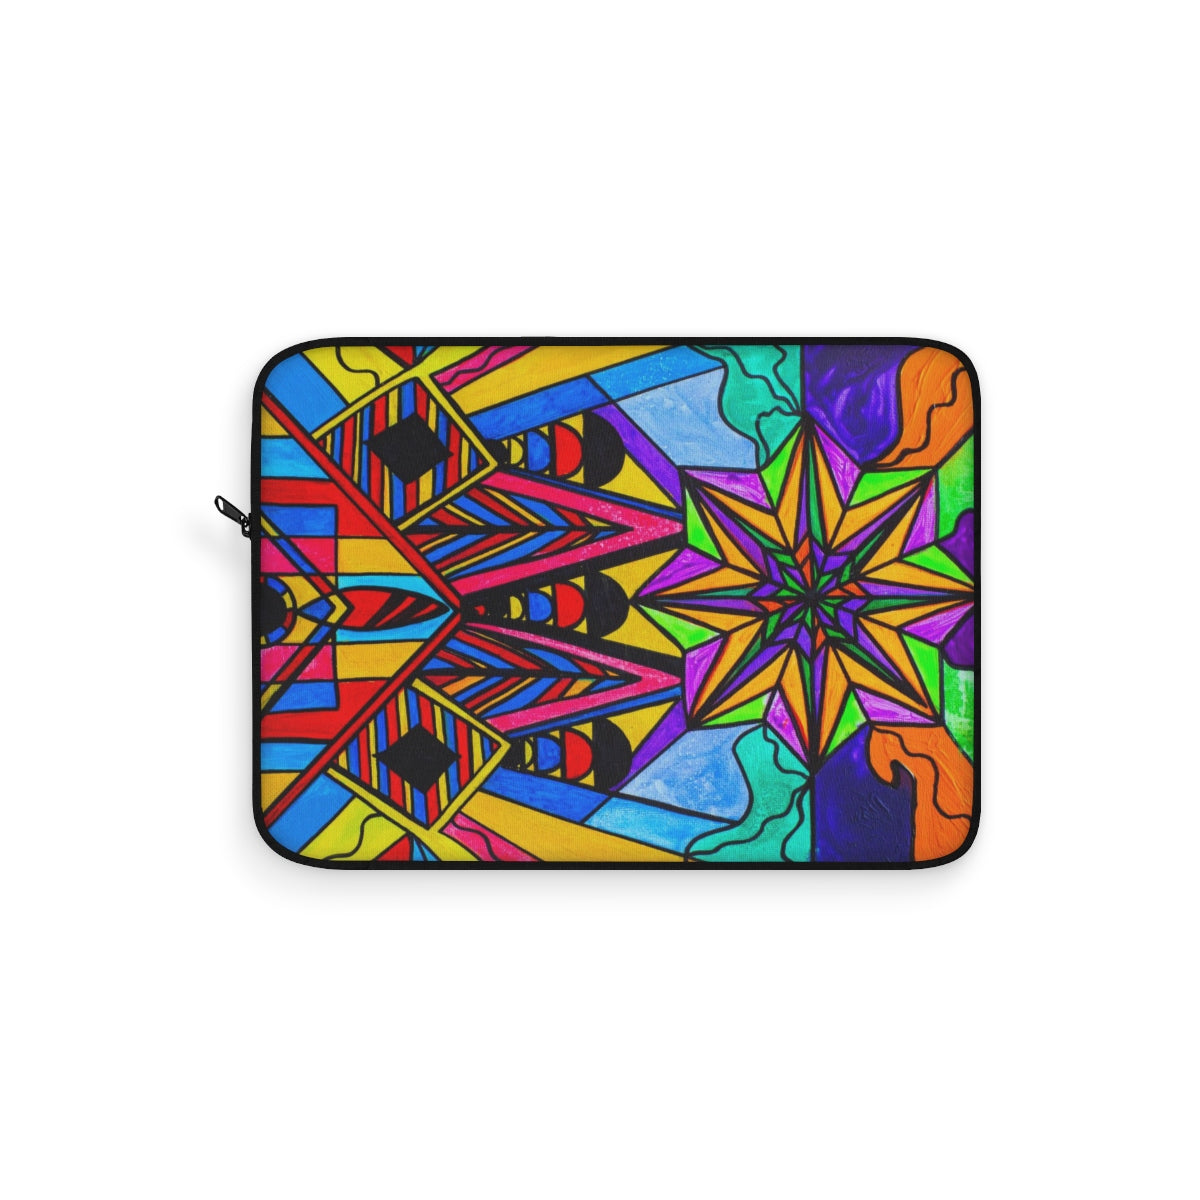 A Change In Perception - Laptop Sleeve